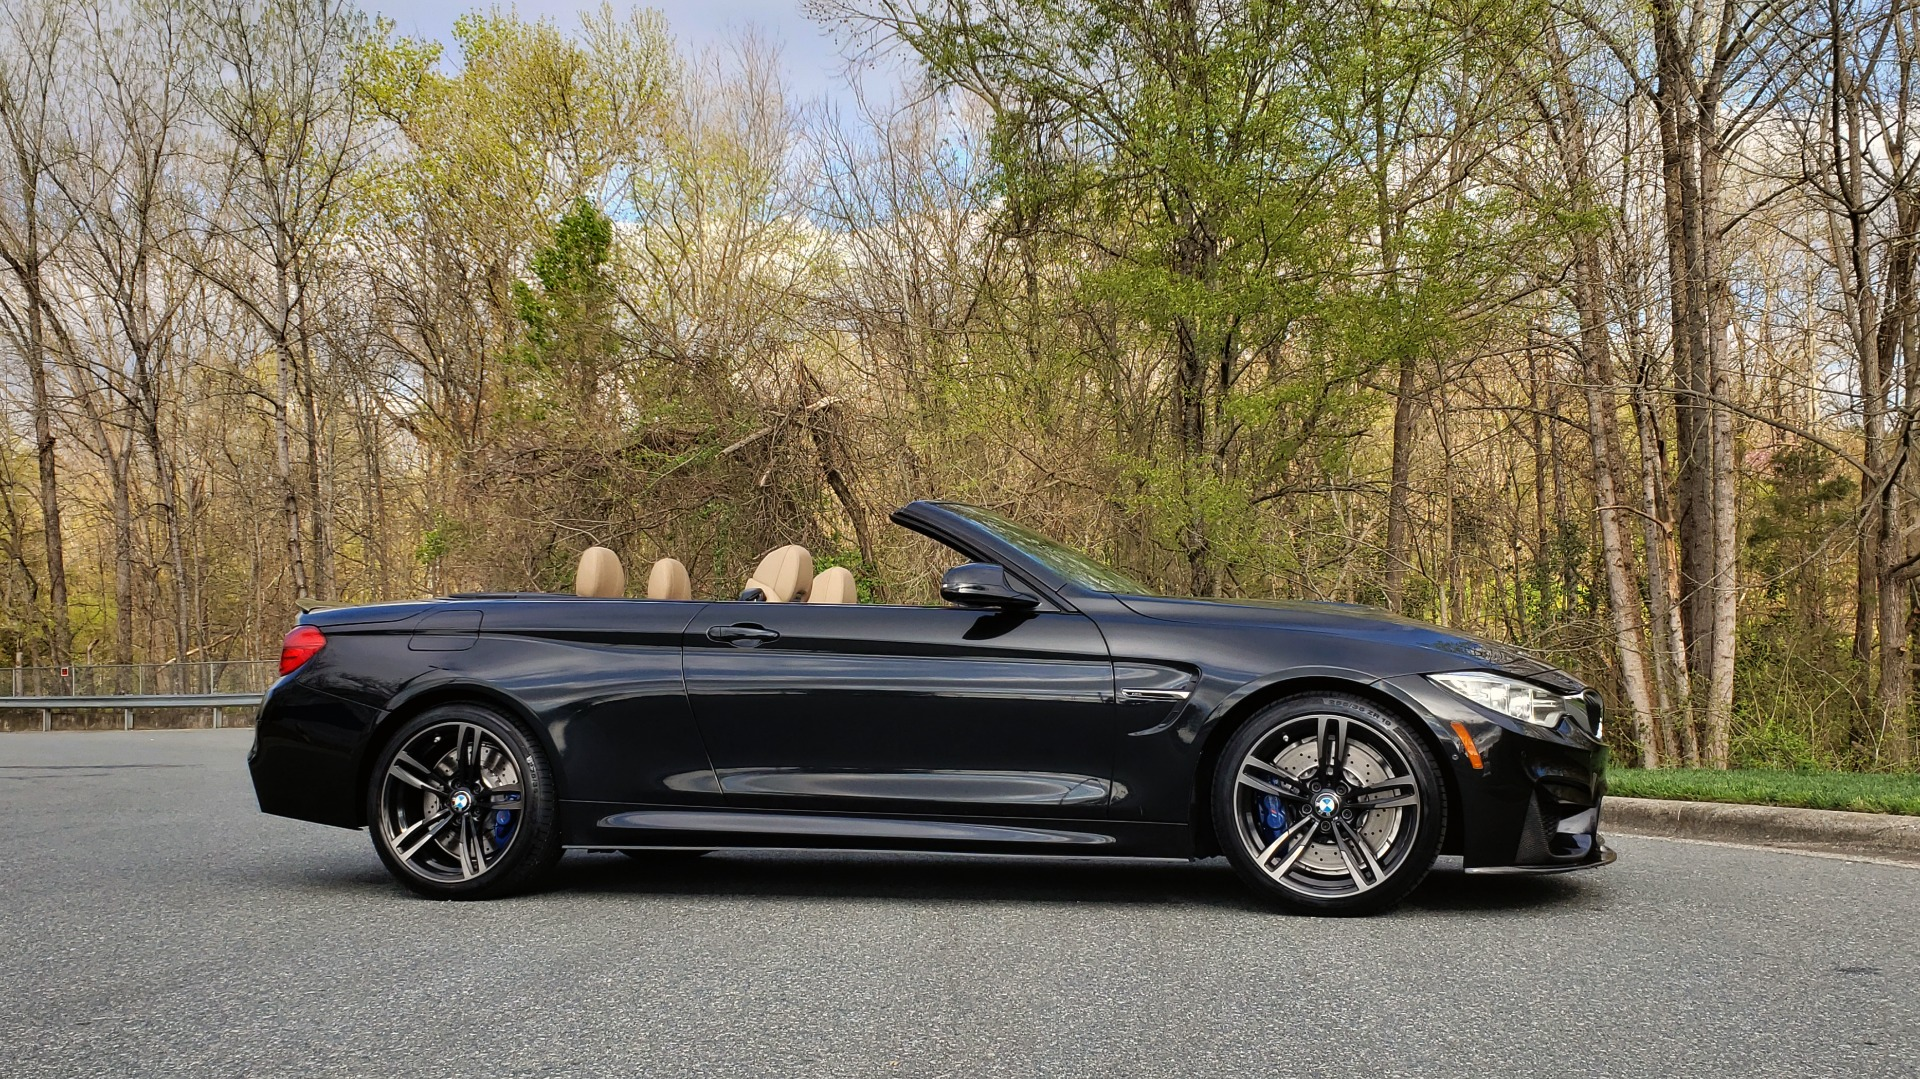 Used 2016 BMW M4 CONVERTIBLE / EXEC PKG / DRVR ASST / M SUSPENSION for sale Sold at Formula Imports in Charlotte NC 28227 8